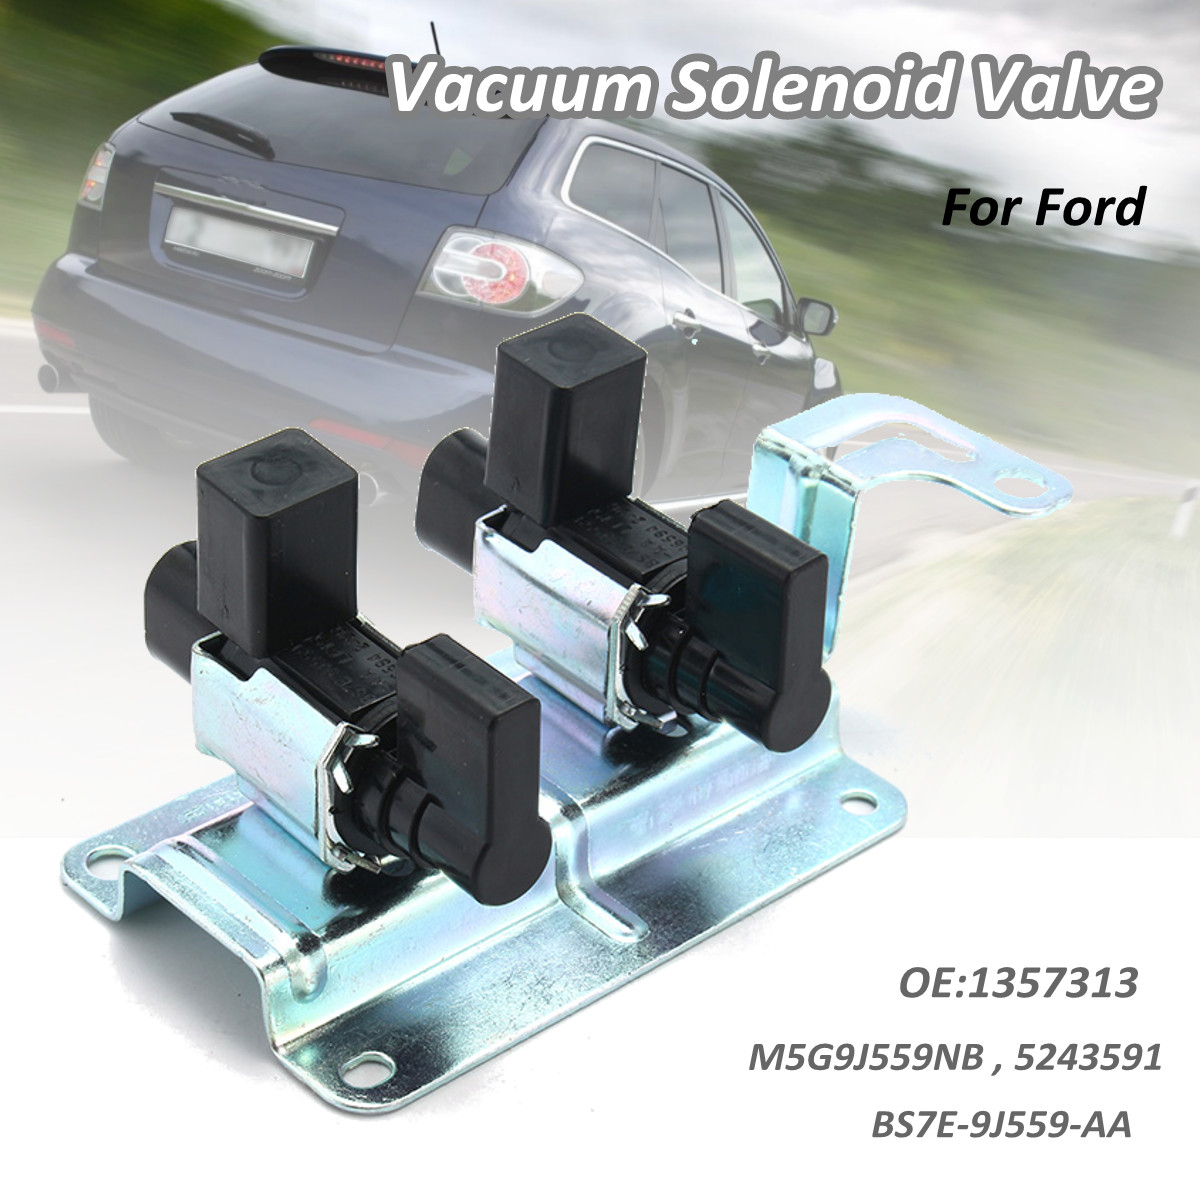 Intake Manifold Vacuum Solenoid Valve 4M5G-9J559-NB 4M5G9J559NB Runner Control For FORD For Focus Cmax For Mondeo For Mazda